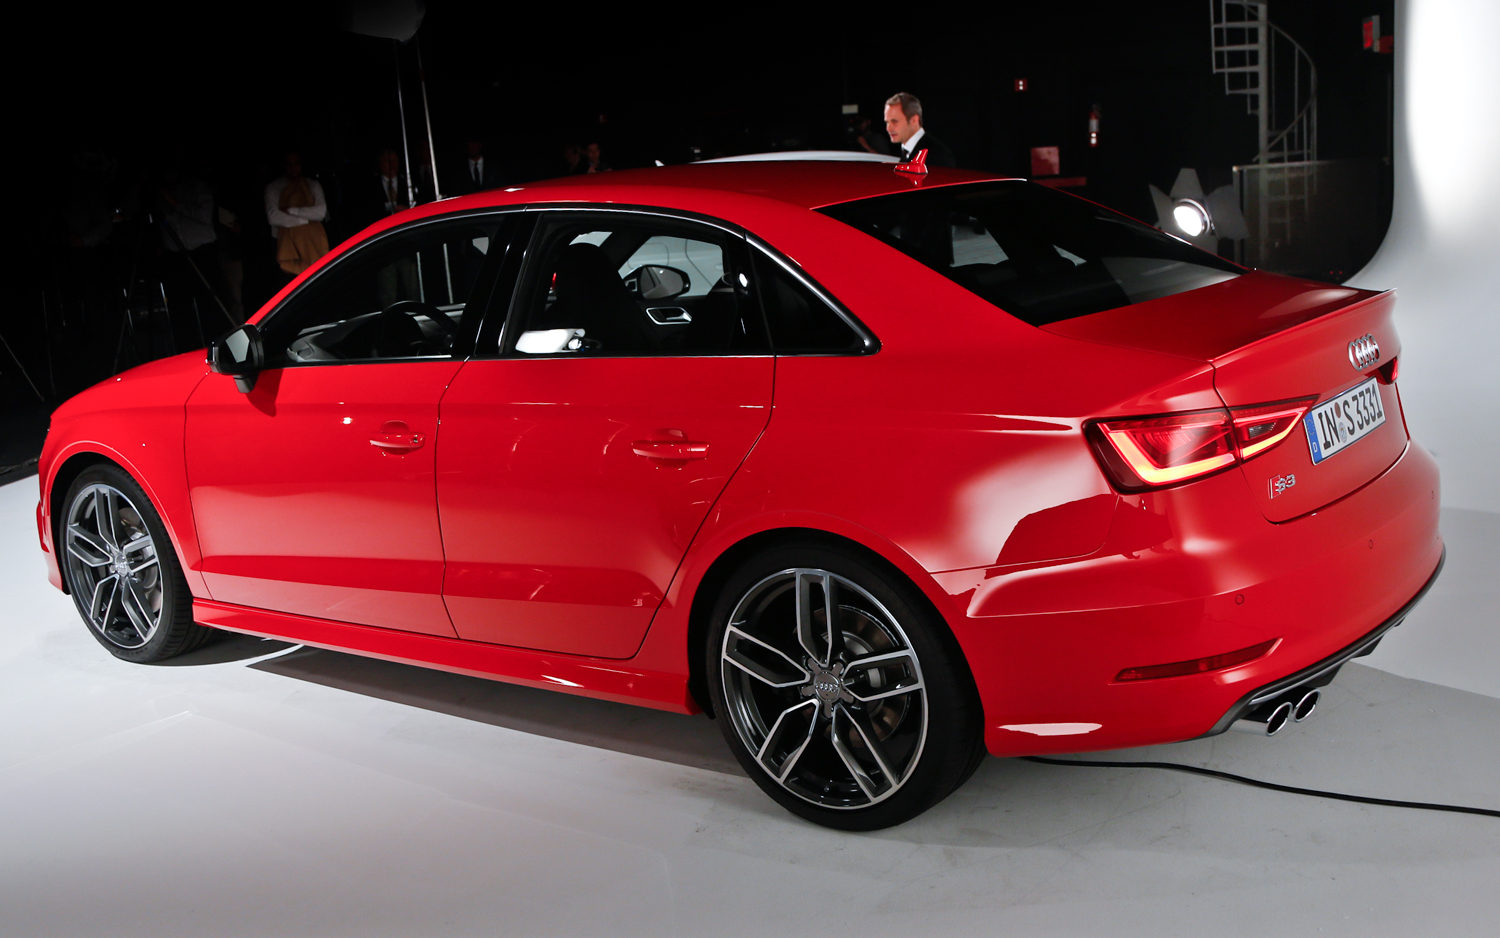 2015 Audi S3 Sedan Rear Side Preview (Photo 8 of 10)